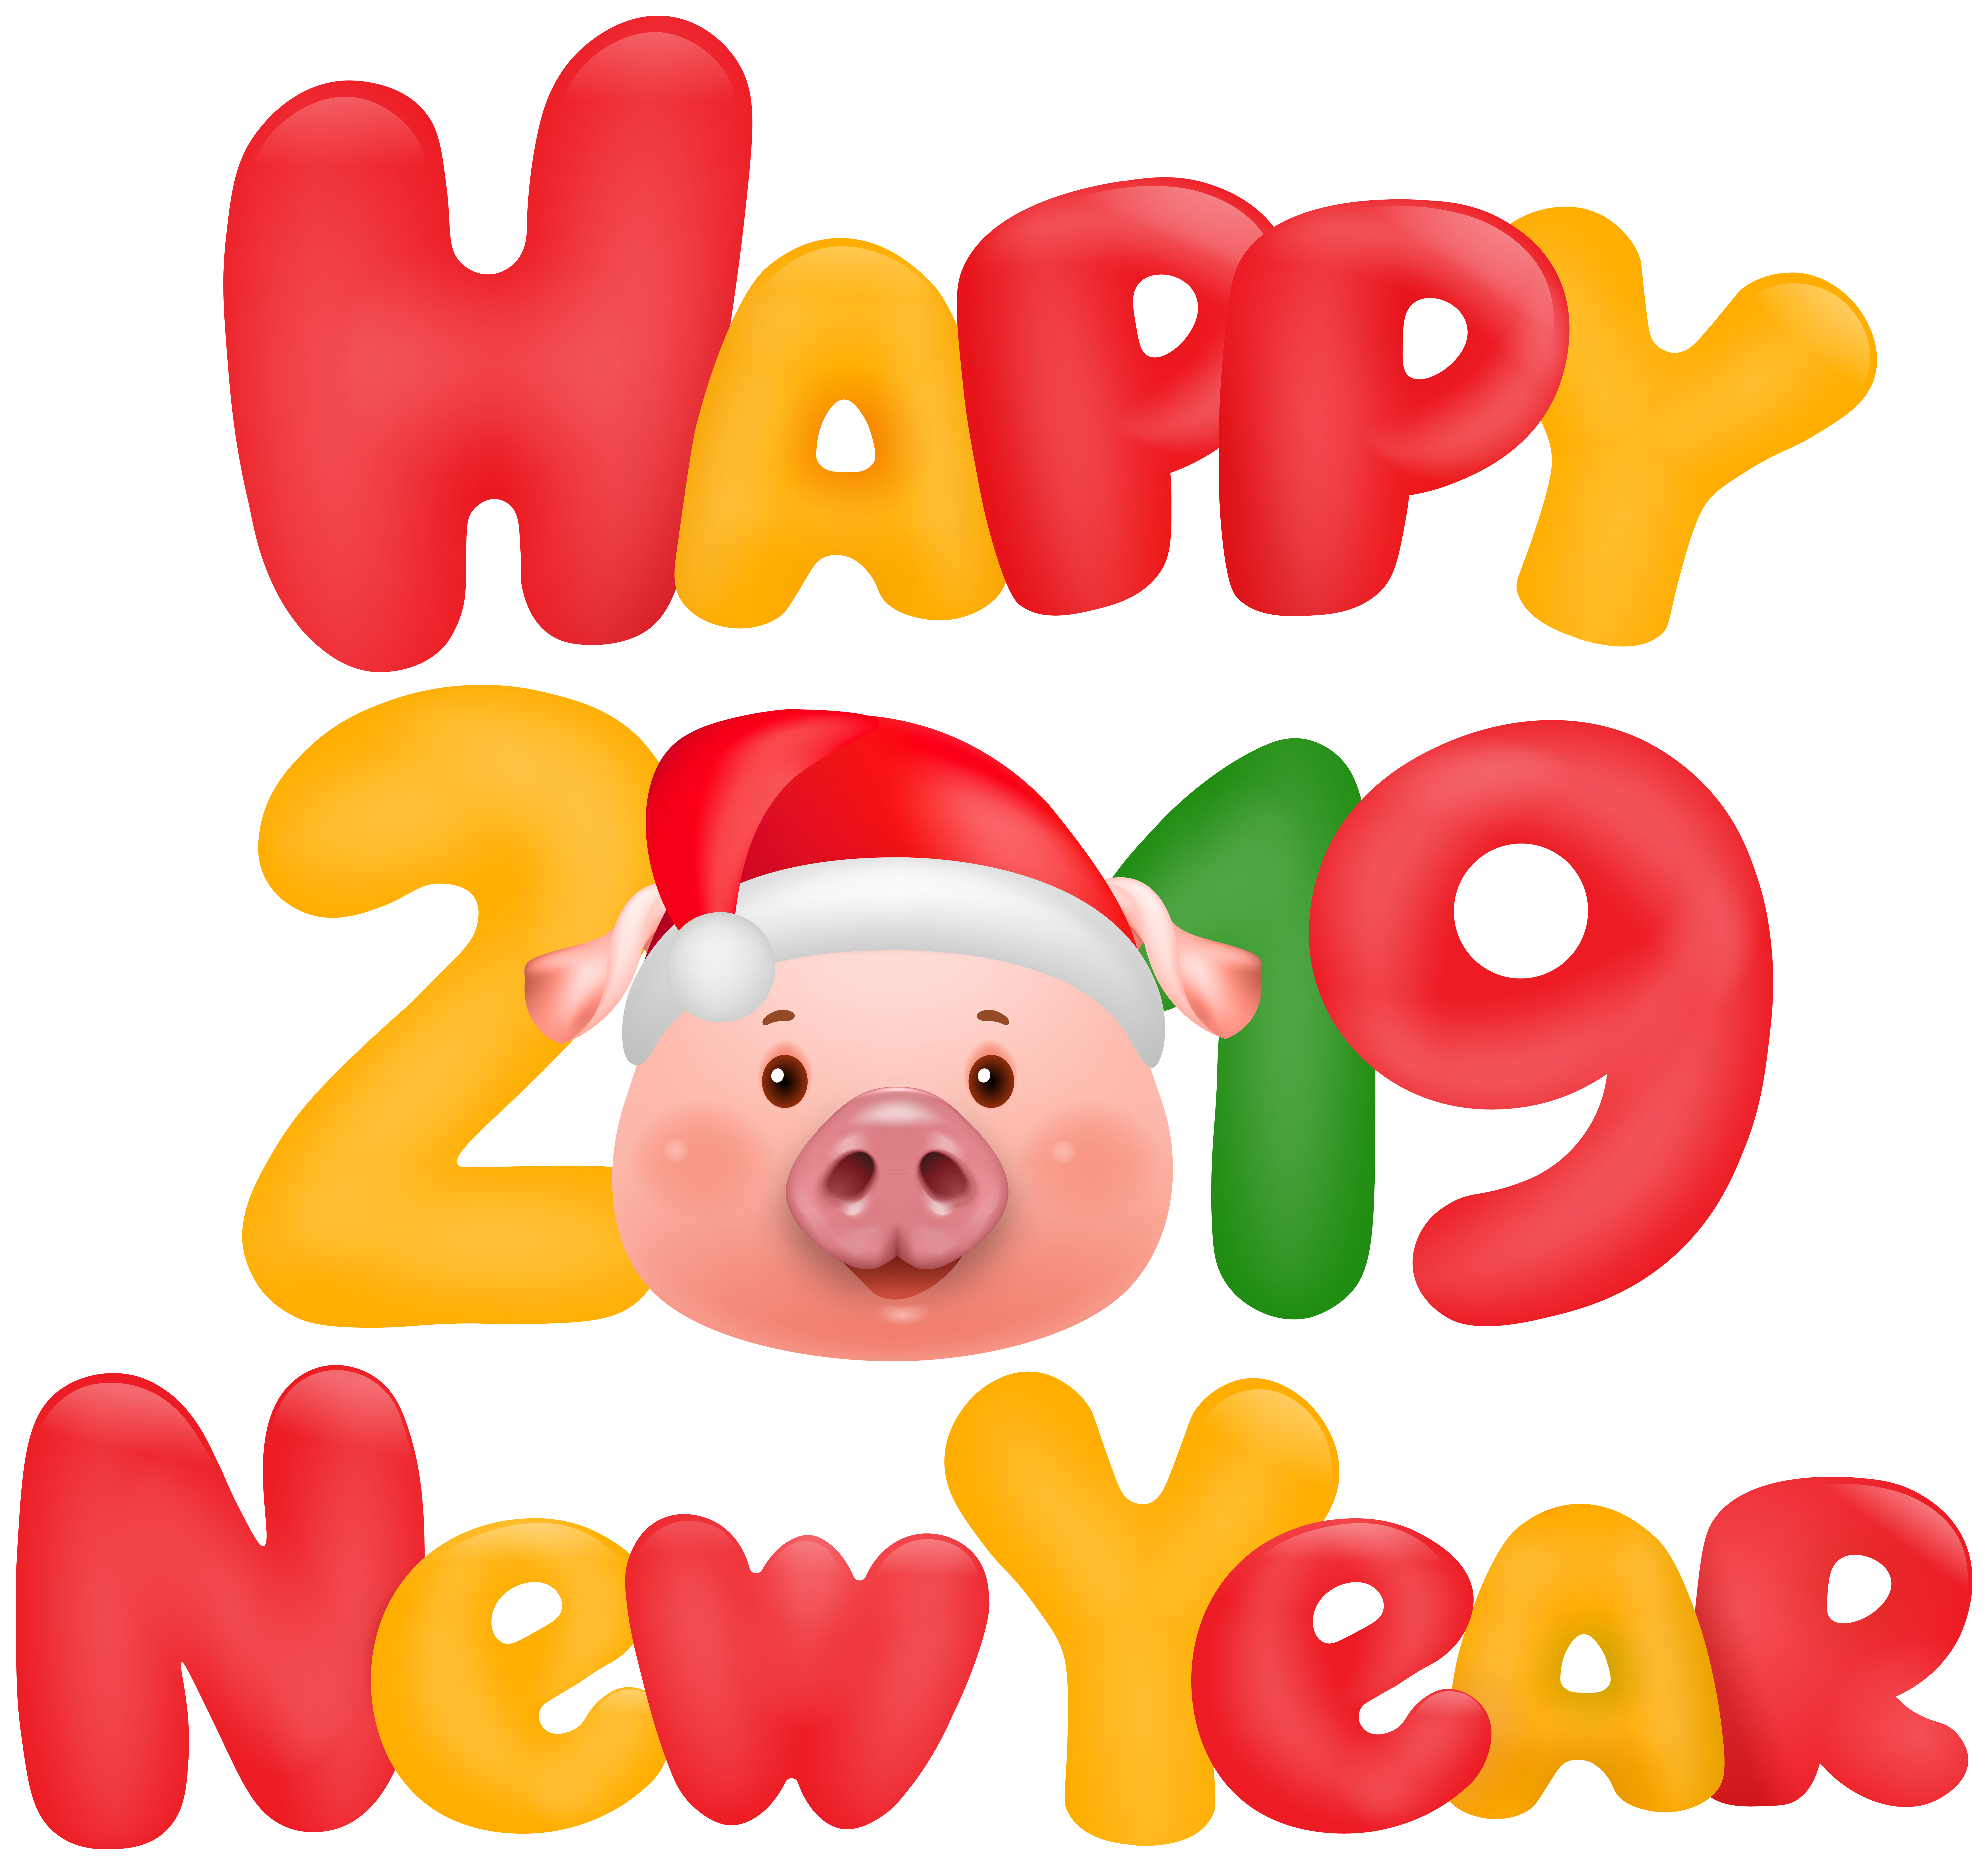 Happy New Year 2019 Pig Clip Art Image.